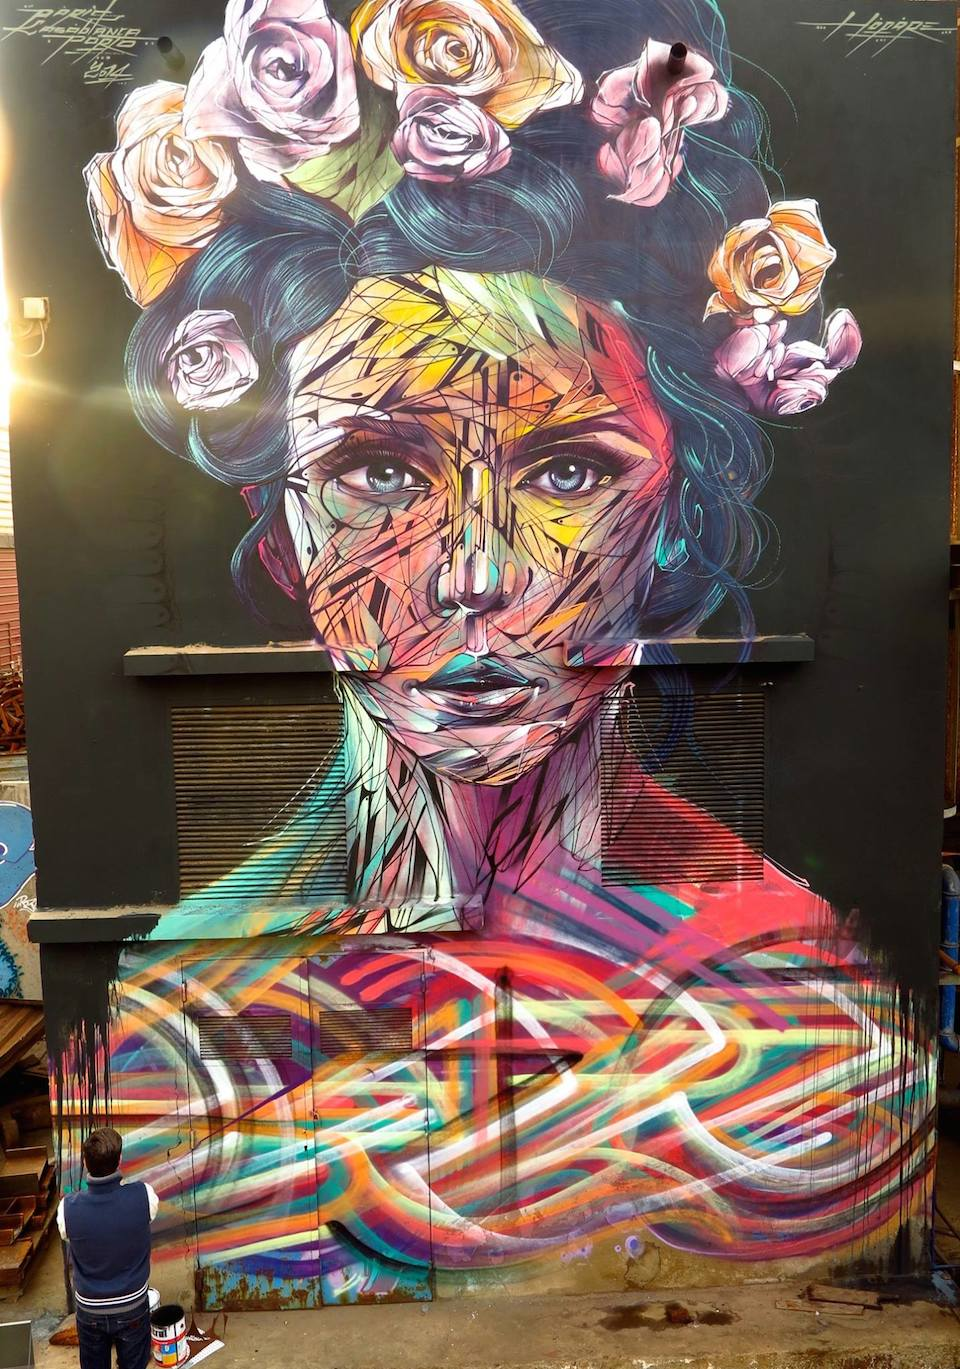 By Hopare in Casablanca, Morocco 1